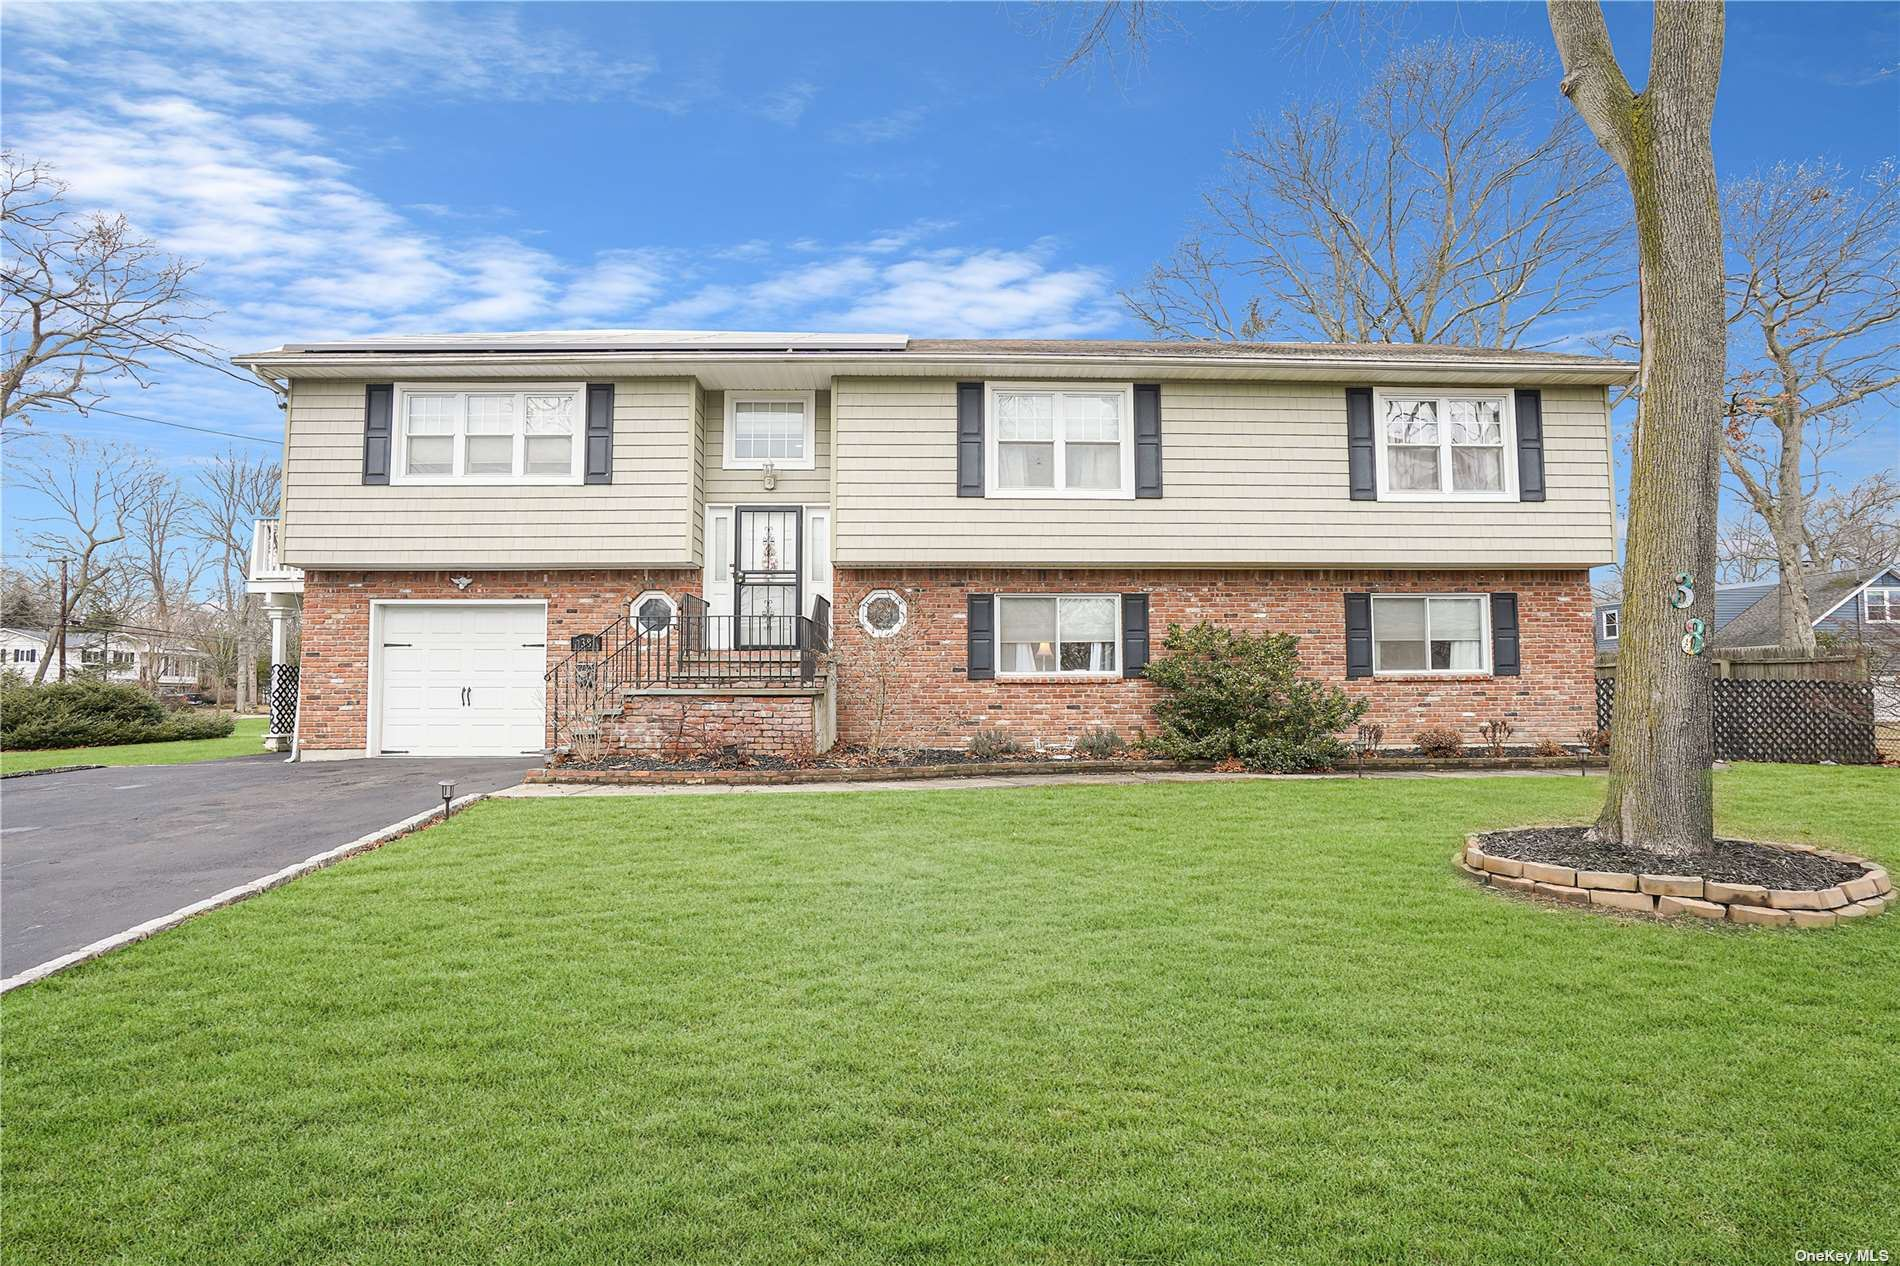 38 Mohawk Drive, Brightwaters, NY 11718 - MLS#: 3329755